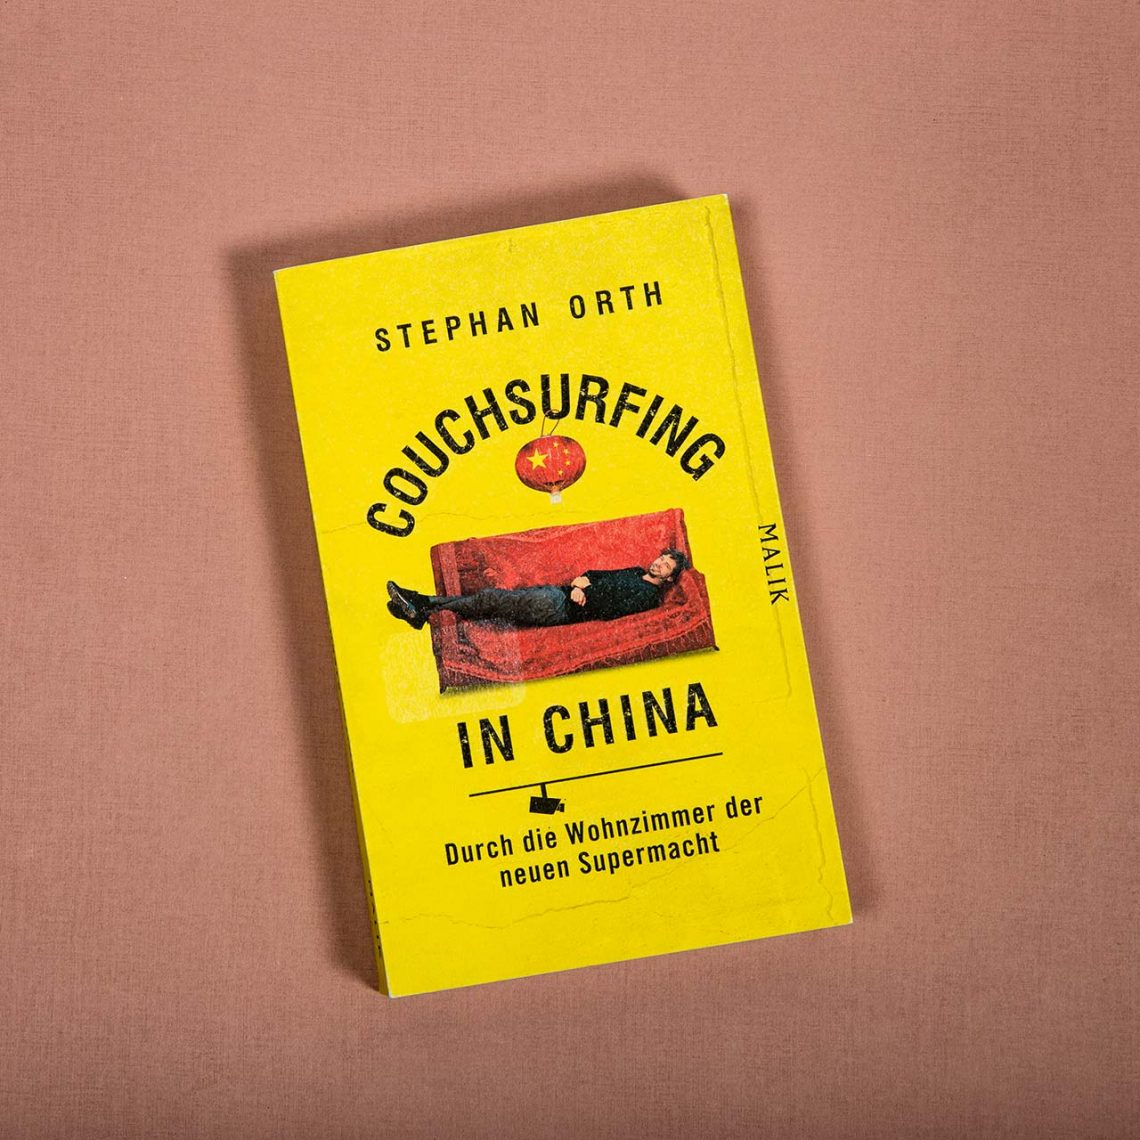 2019_Buch_CouchsurfingChina_01